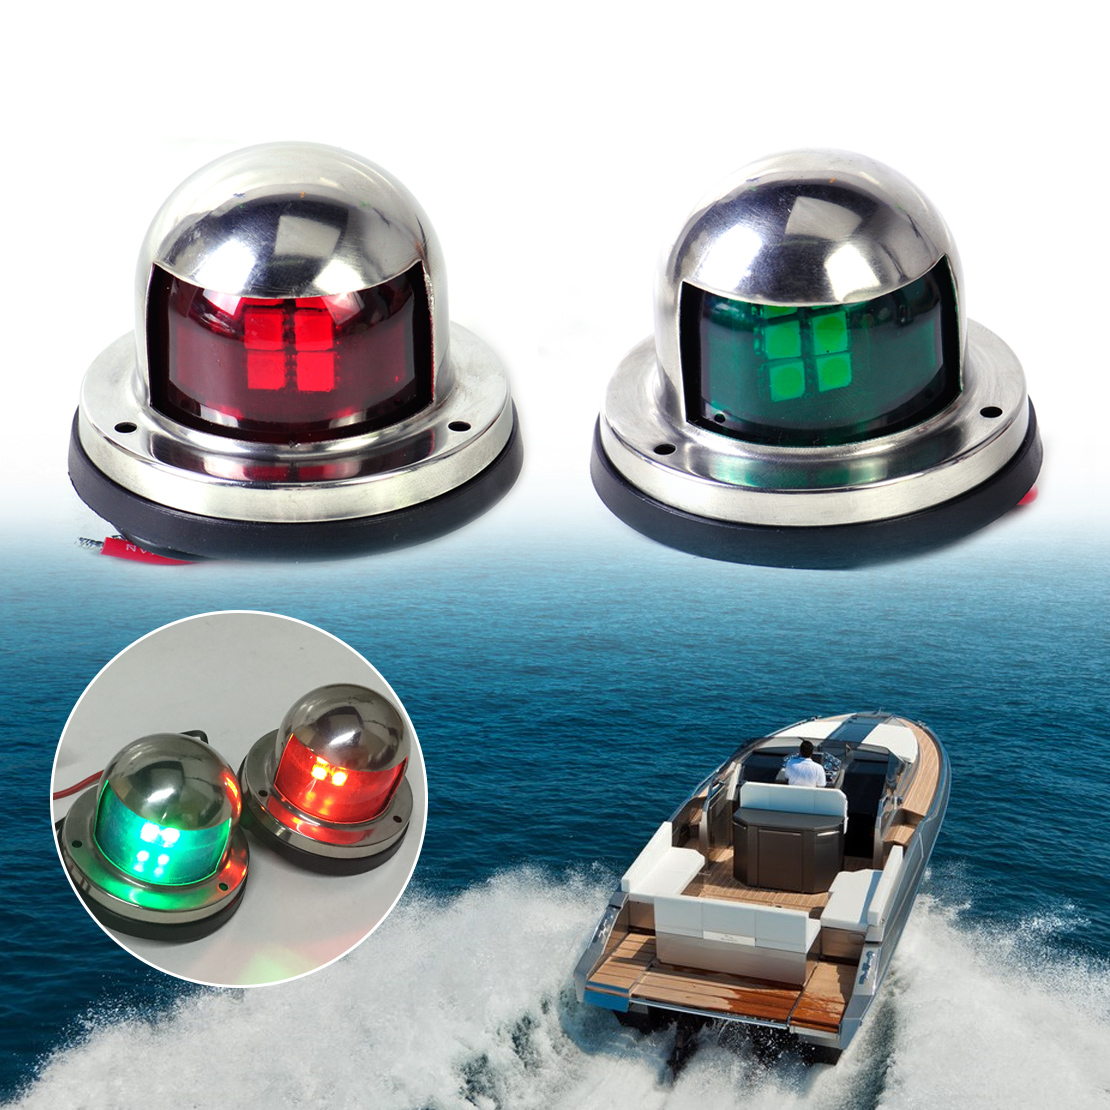 DWCX 1 Pair 12V LED Bulb Bow Stainless Steel Navigation Light Red Green Sailing Signal Light Fit for Marine Boat Yacht